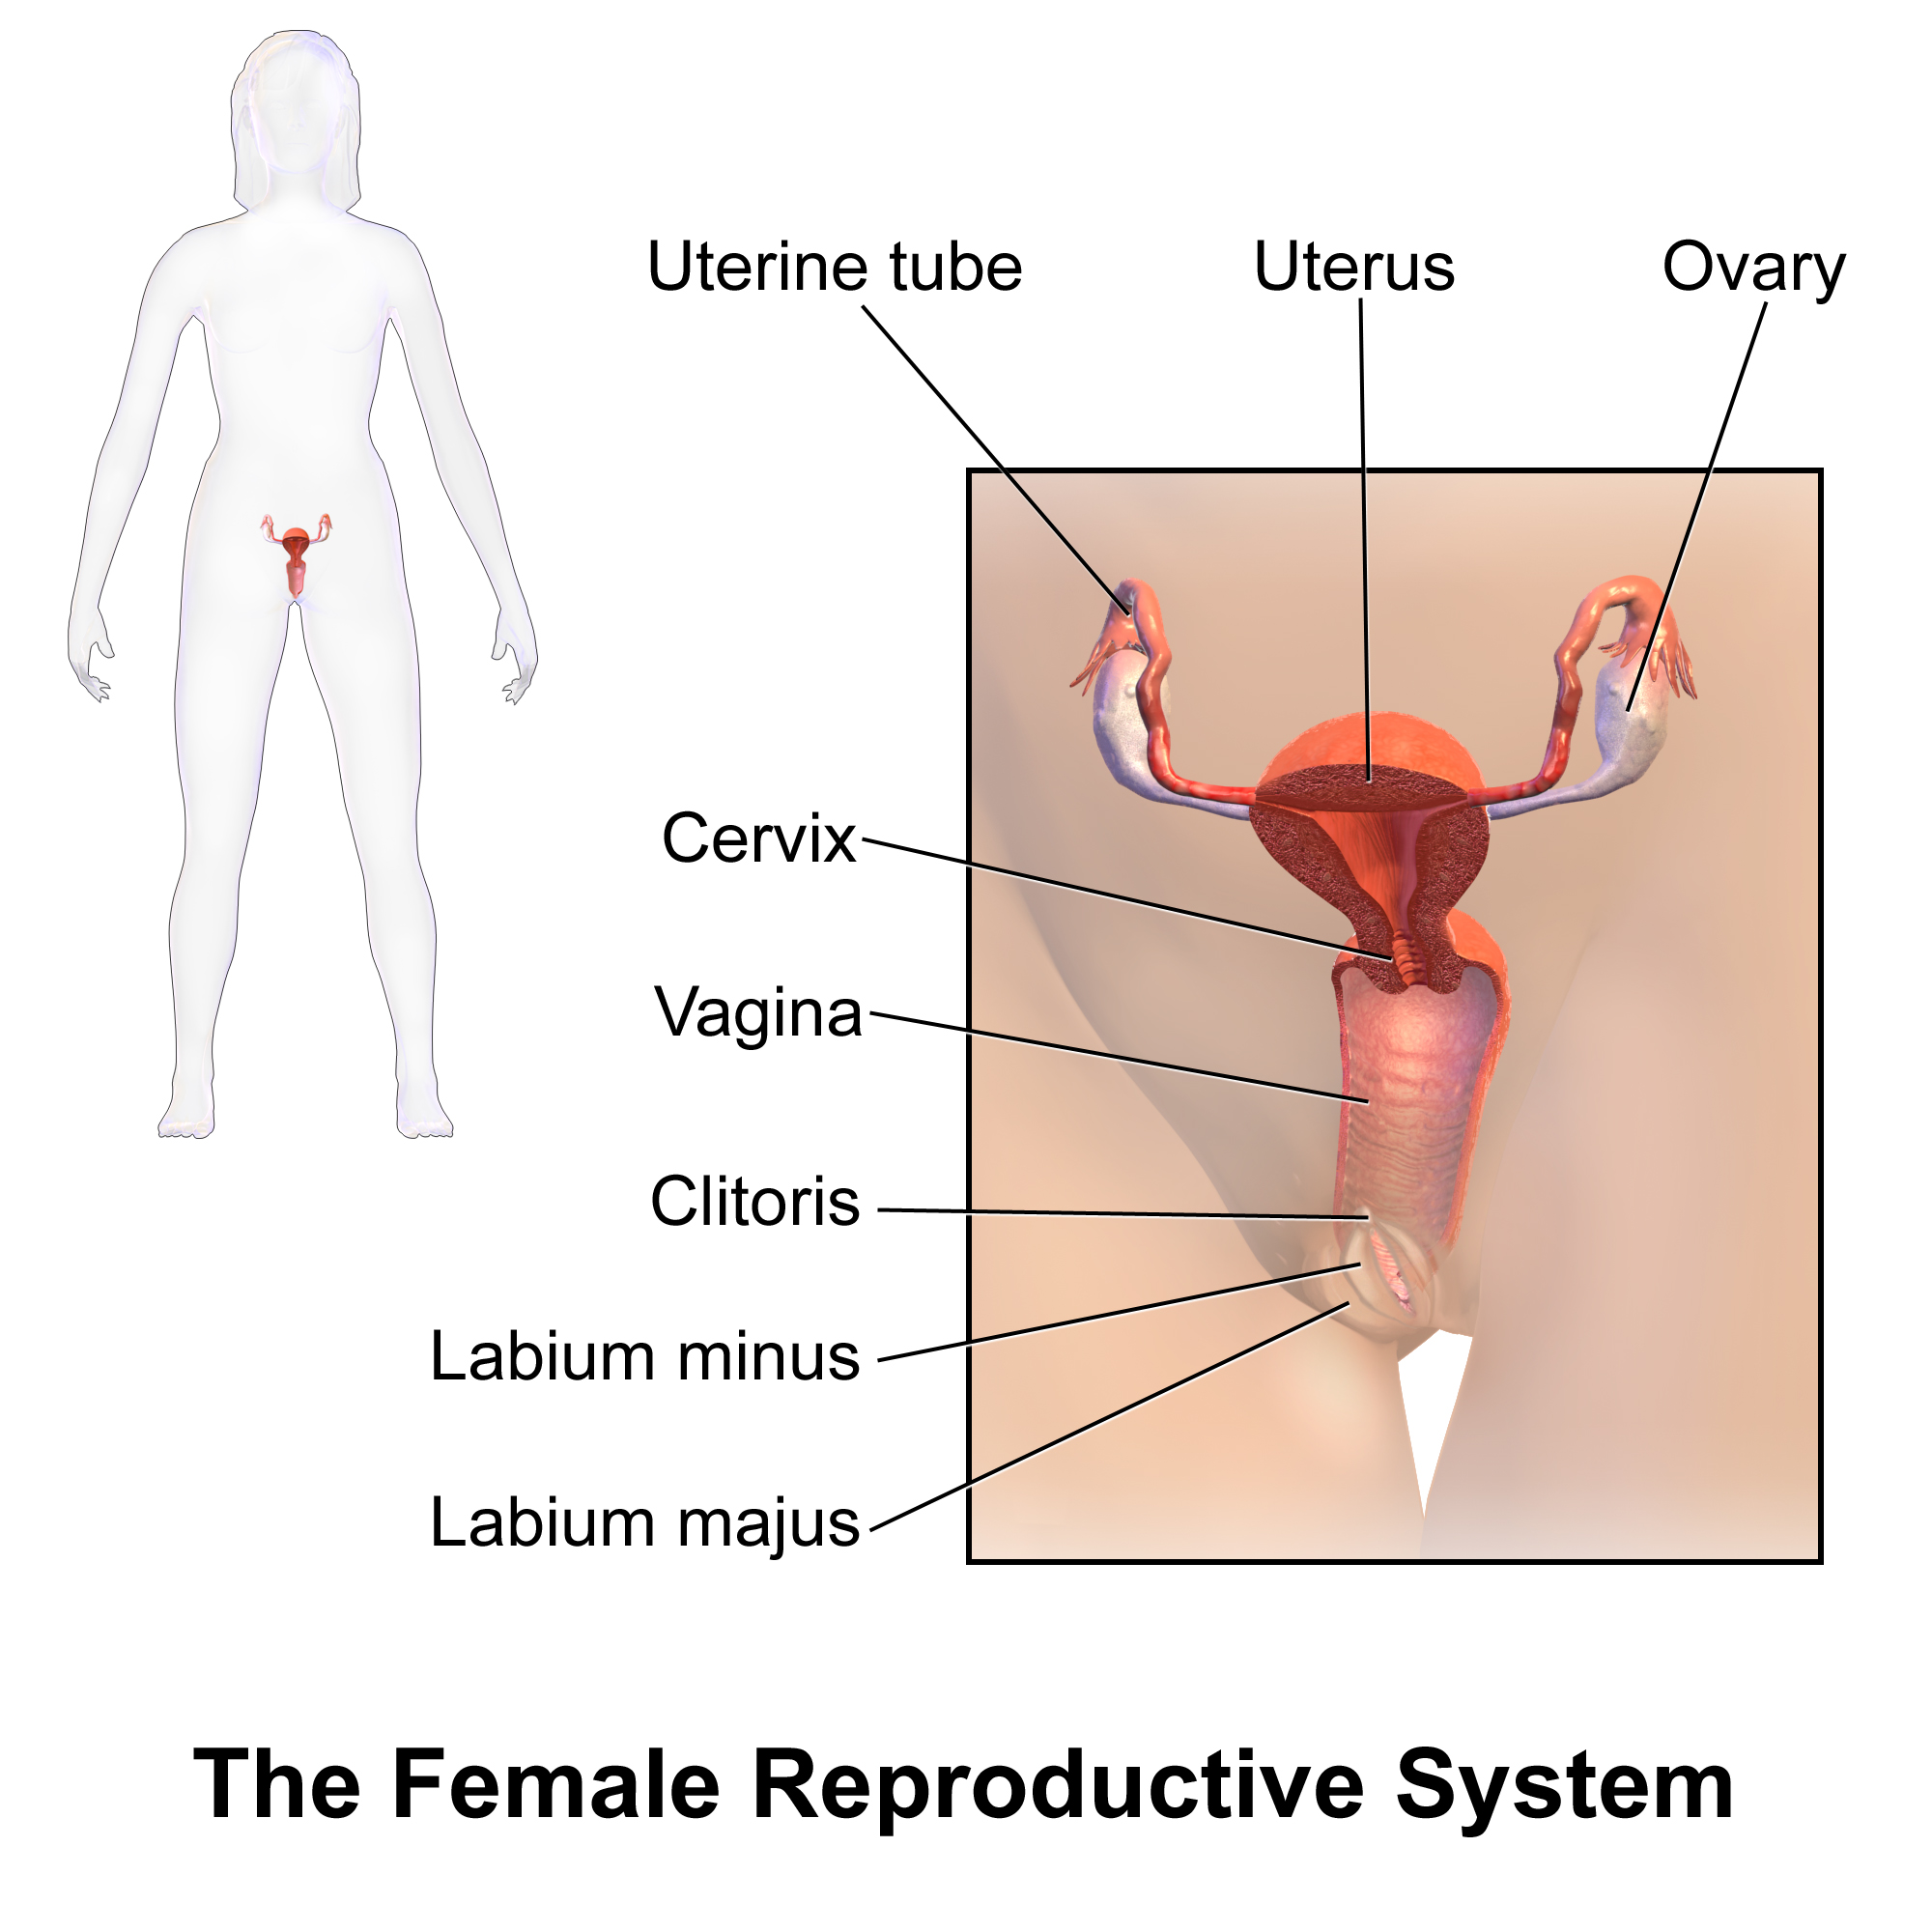 de7d79b81 Female reproductive system - Wikipedia